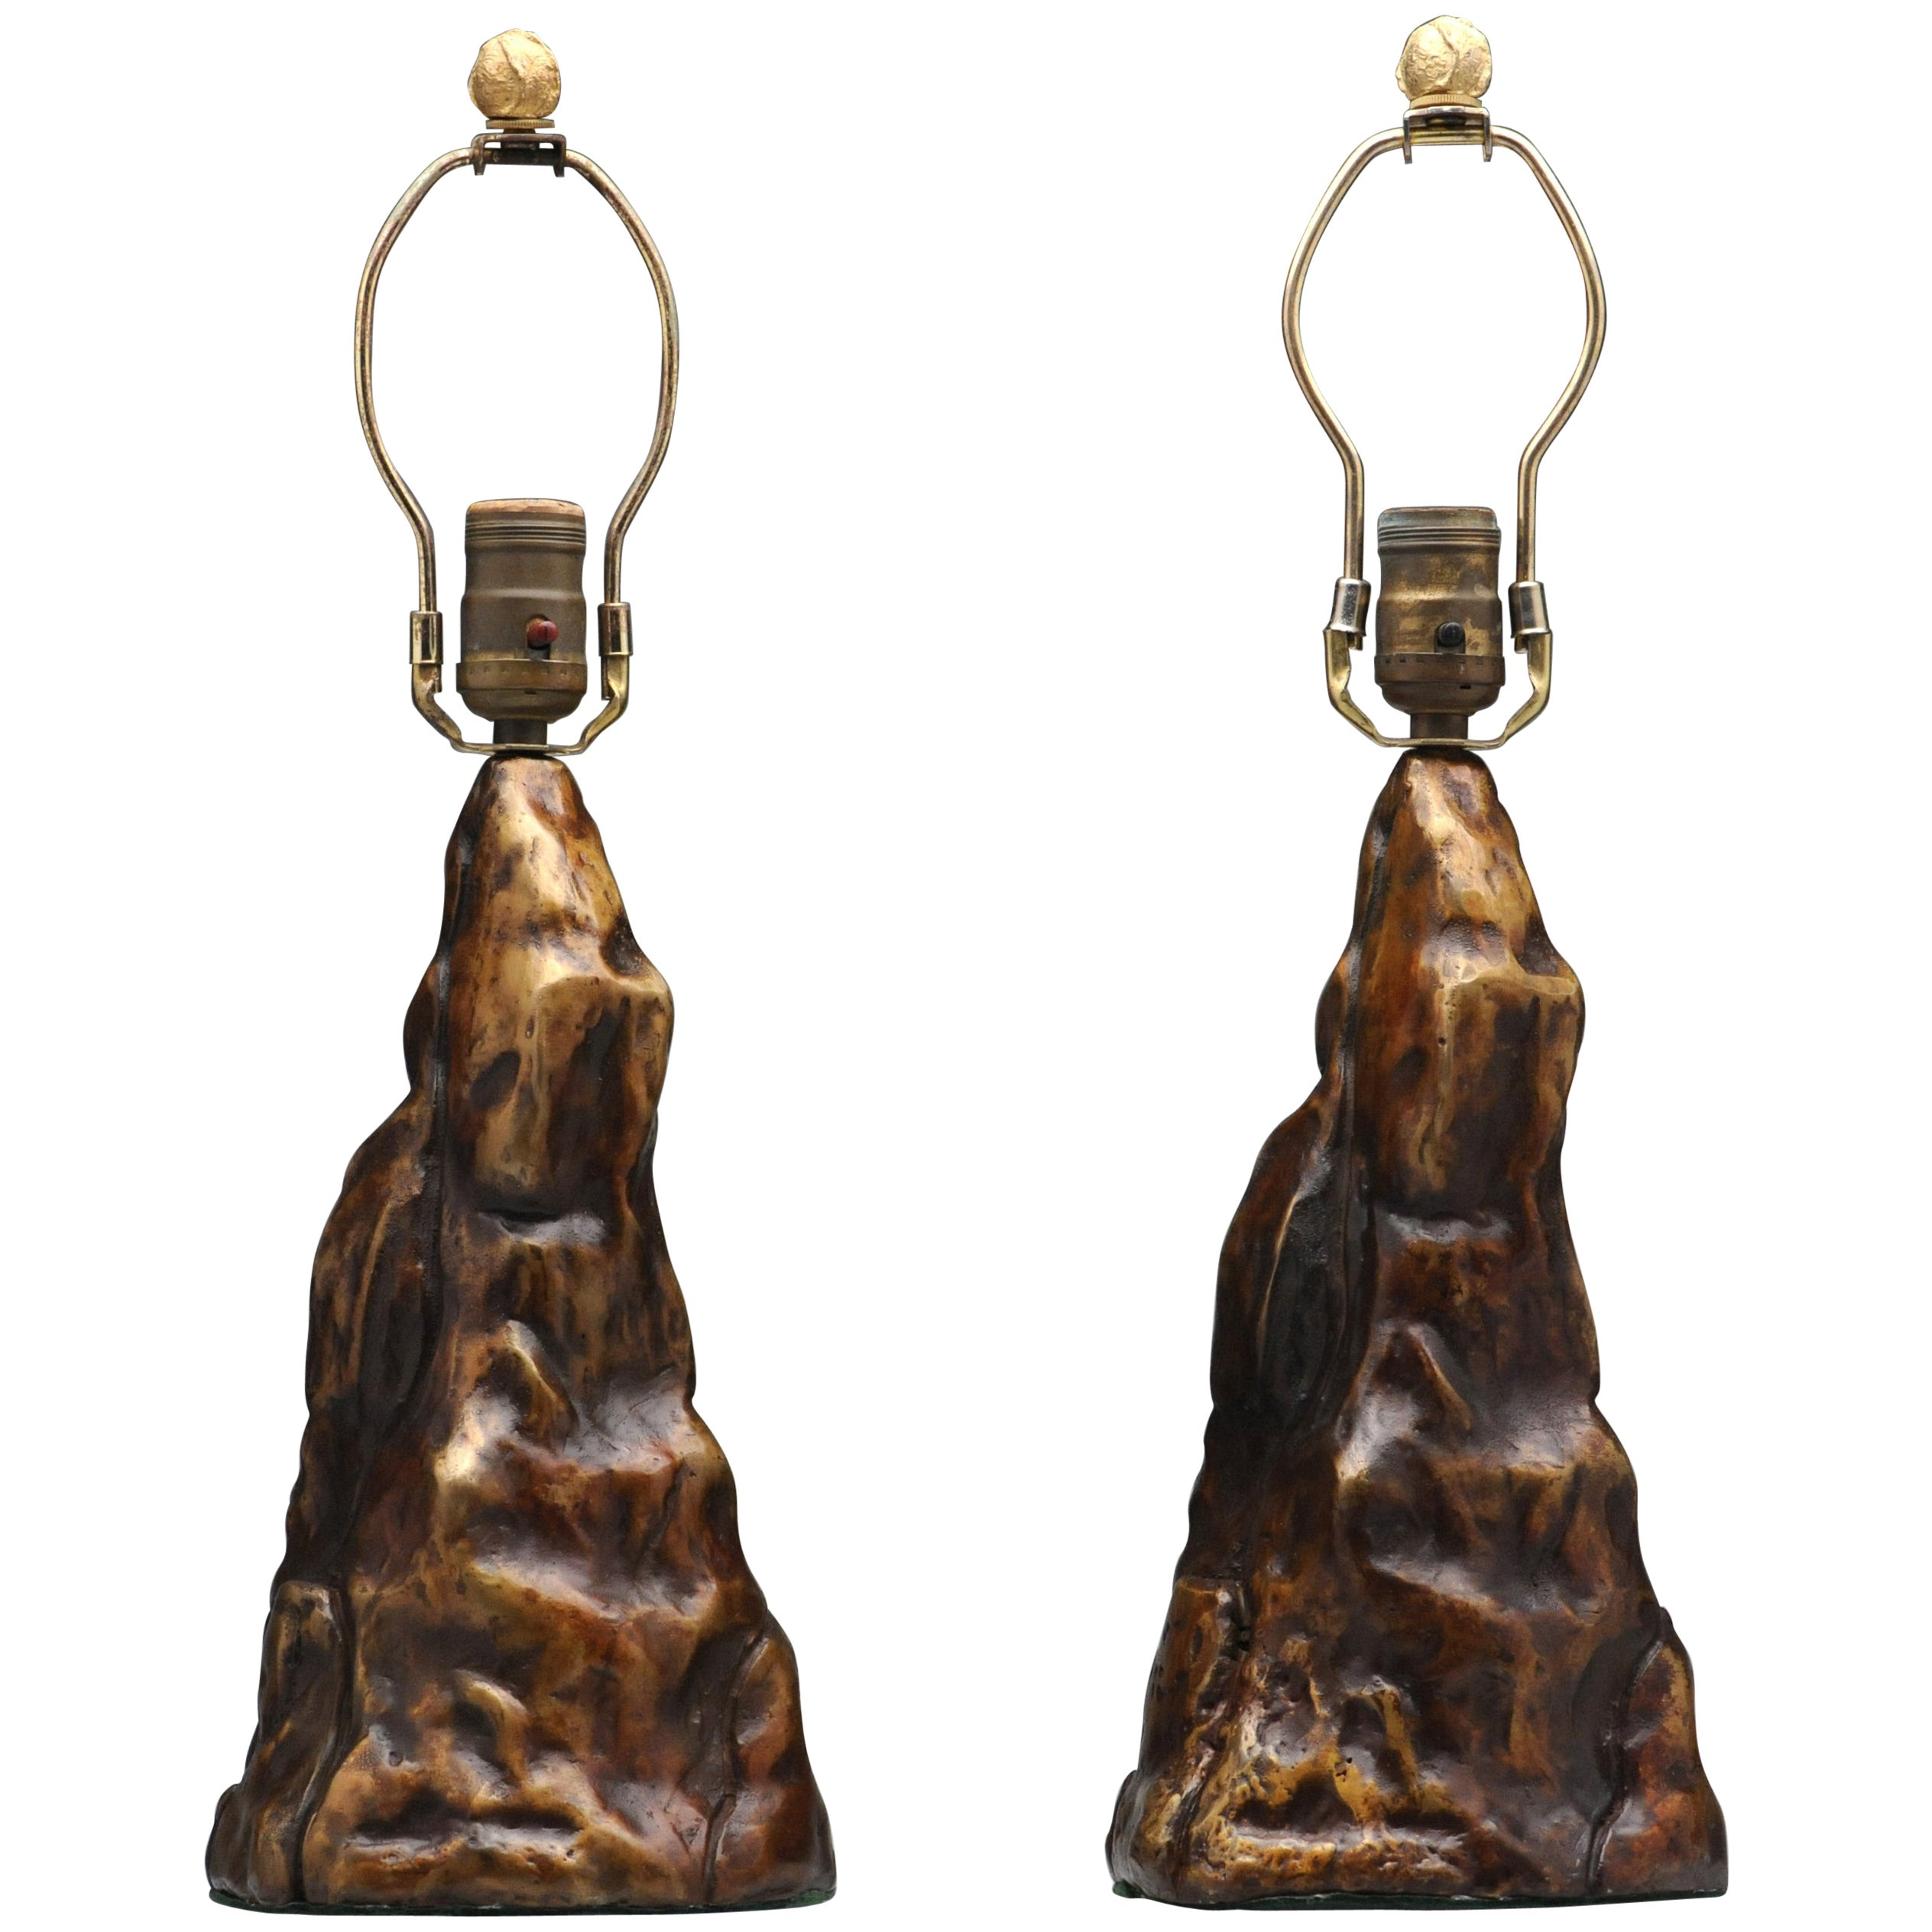 Vintage Pair of Brutalist Bronze Sculptural Table Lamps